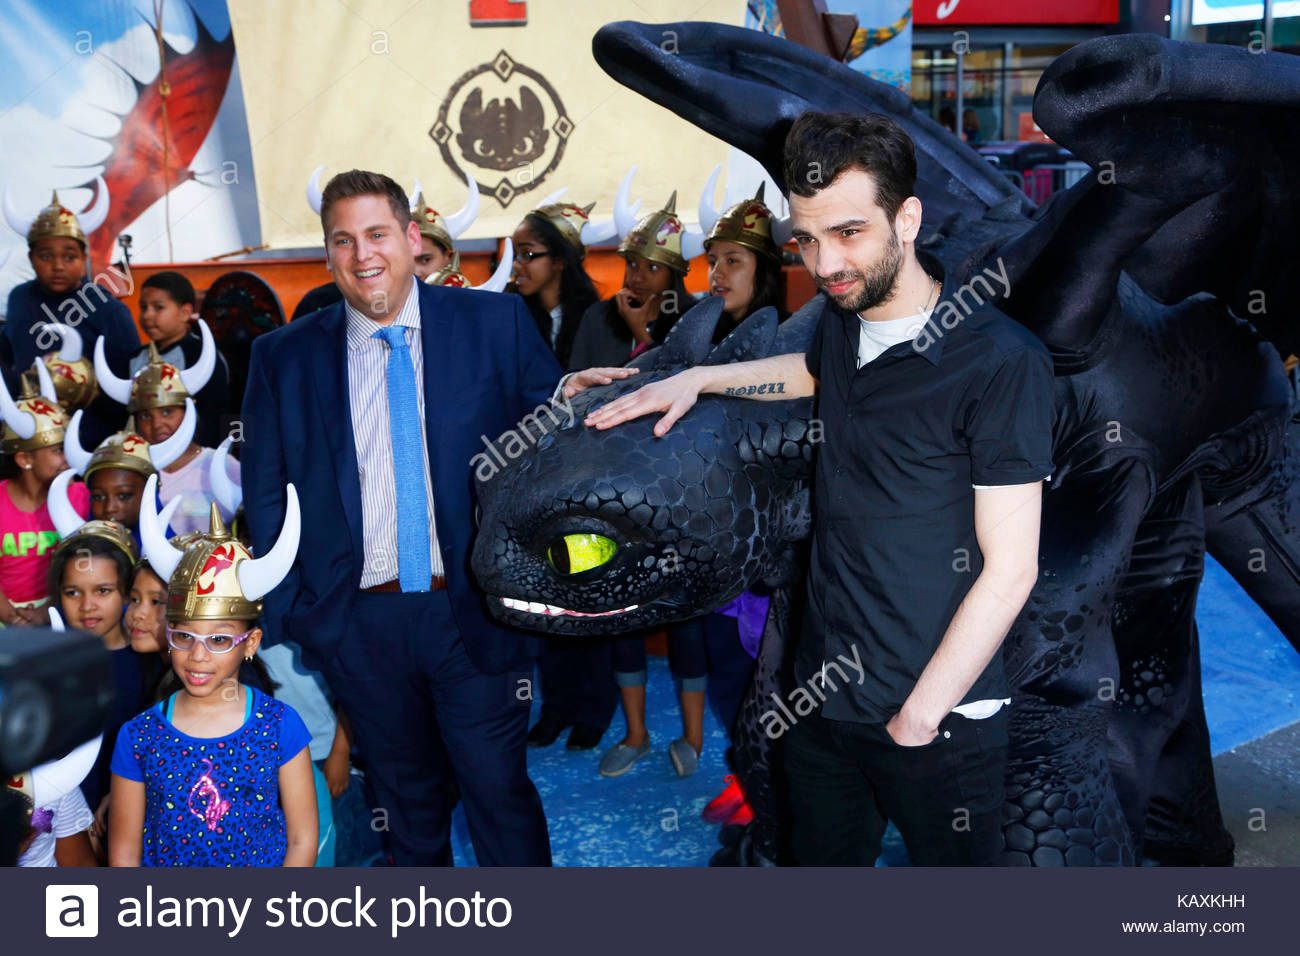 Jonah hill and jay baruchel how to train your dragon 2 photocall jonah hill and jay baruchel how to train your dragon 2 photocall with jonah hill and jay baruchel in nyc ccuart Gallery